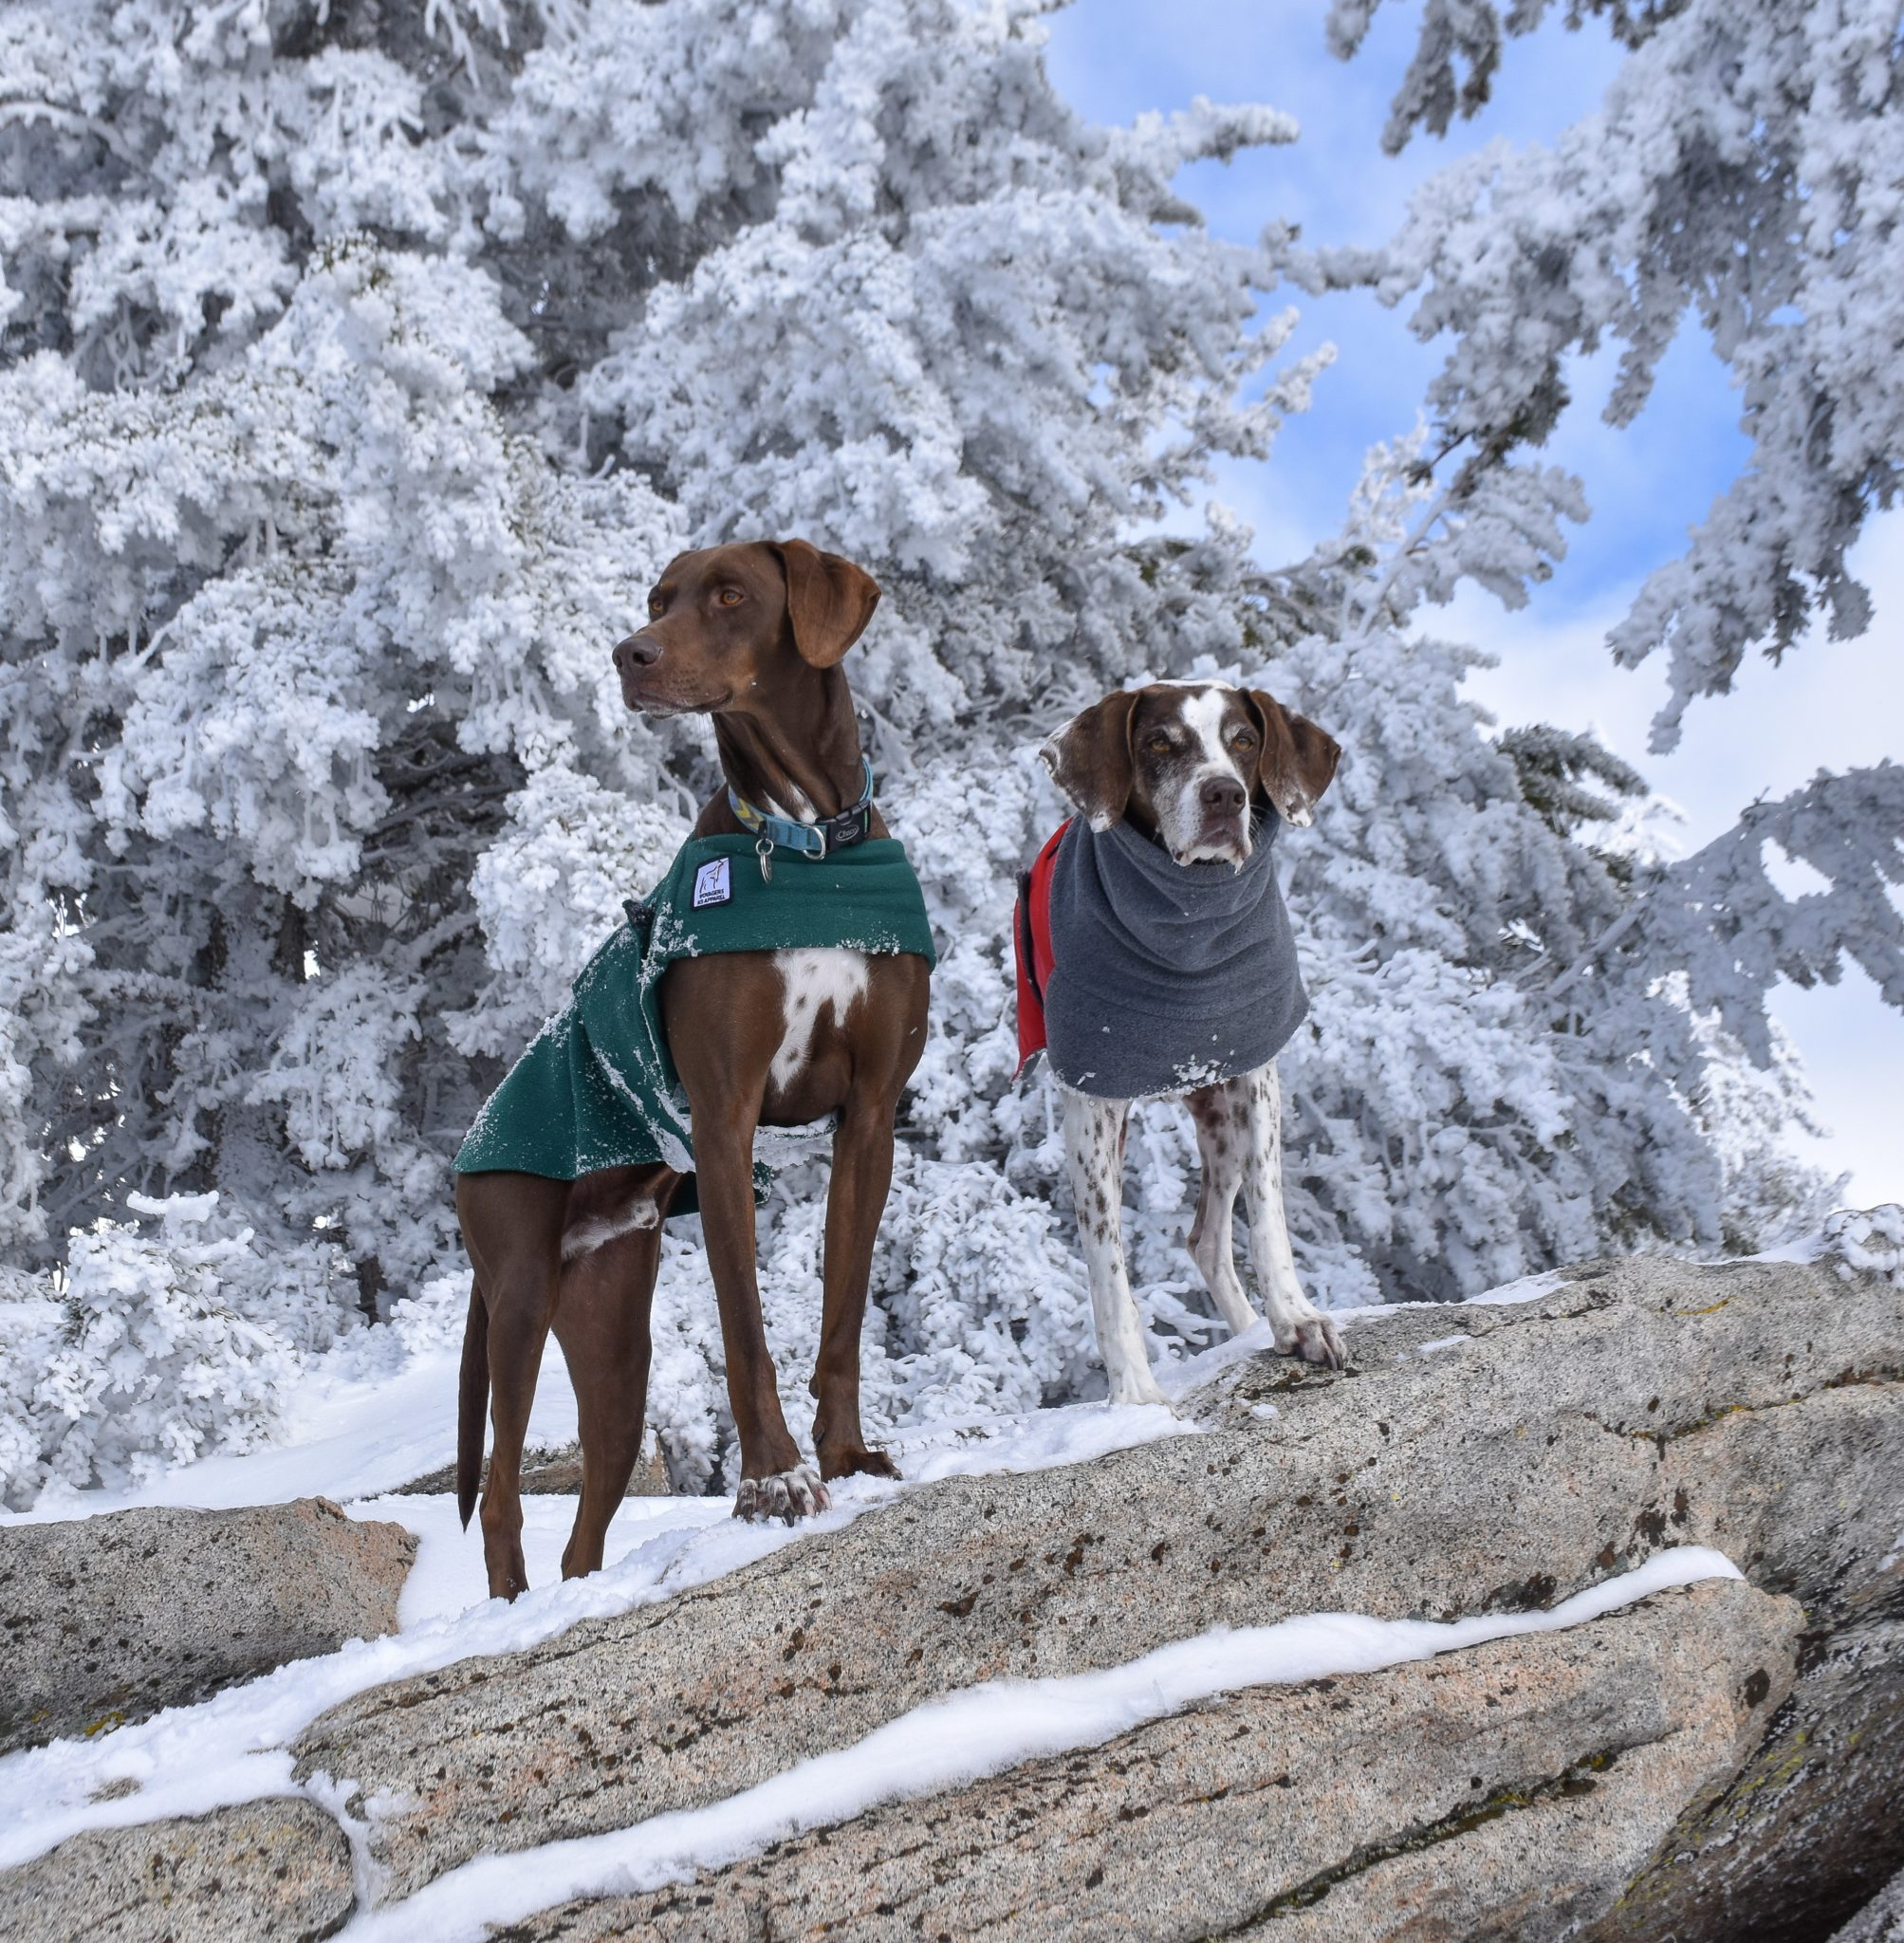 The Voyagers K9 Apparel dog jackets are custom fit to breed or your specific dog to maximize comfort and warmth on winter adventures.